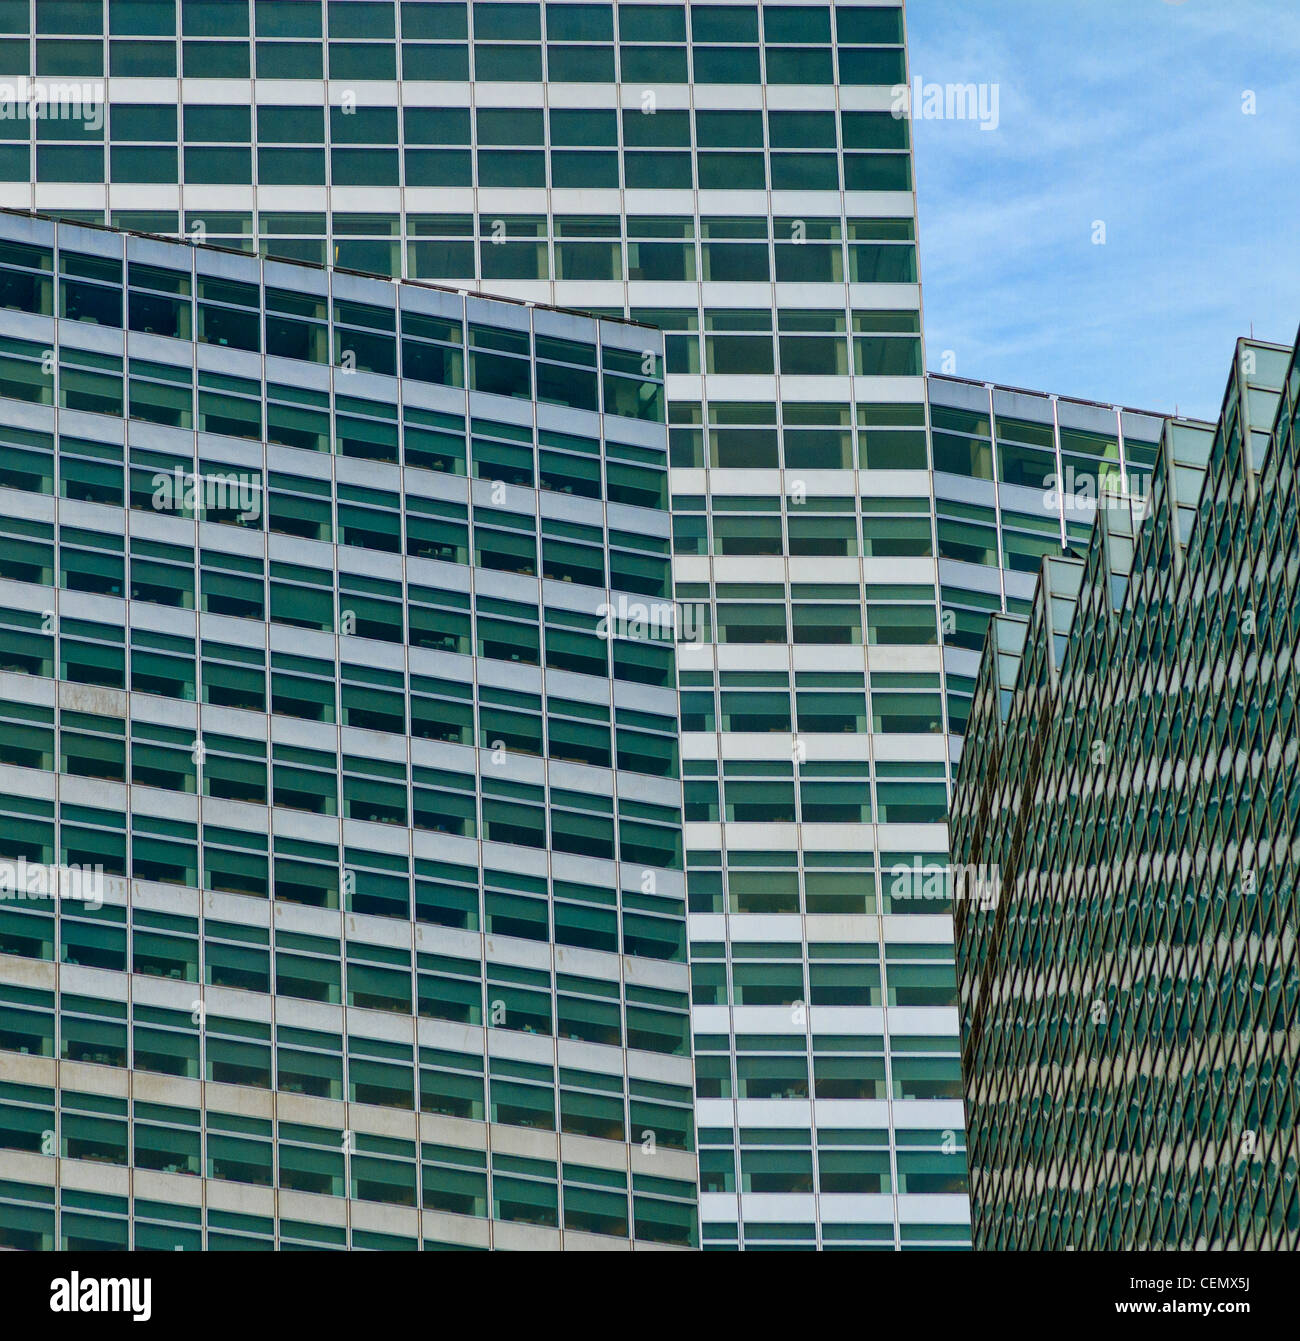 grouping of new york office towers multi faceted and interestingly composed. - Stock Image